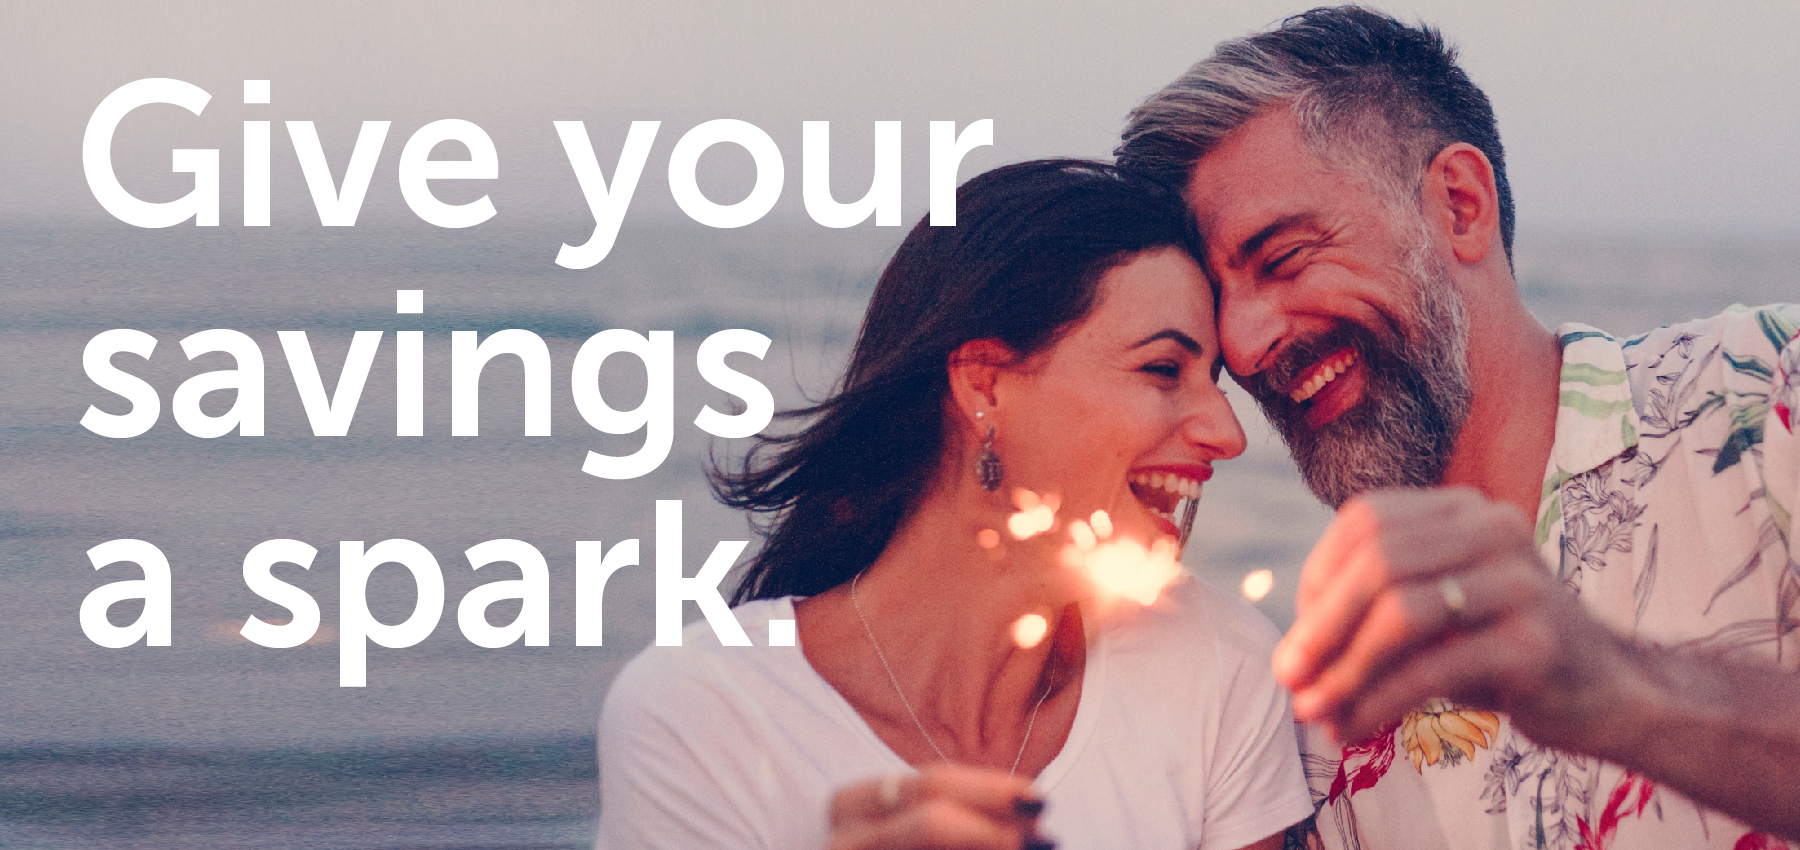 Give your savings a spark.